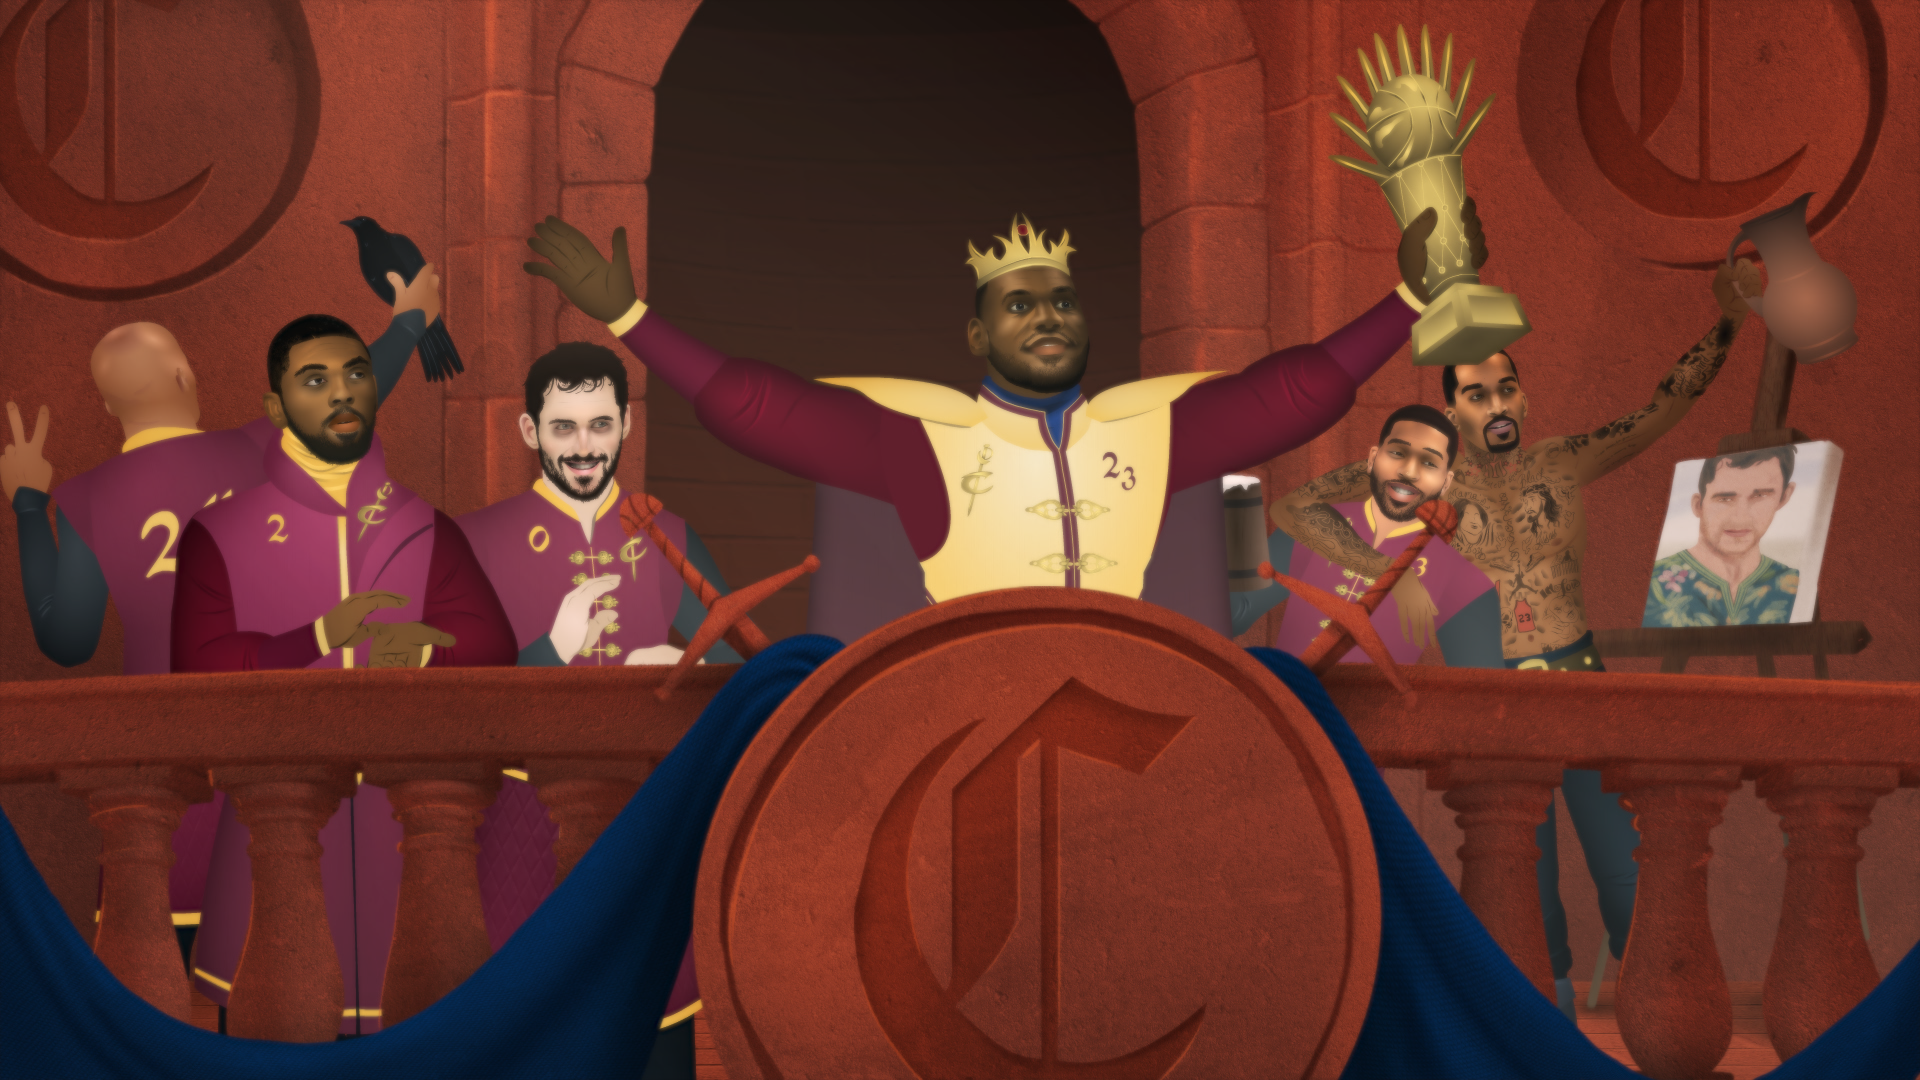 Thumbnail for Game of Zones